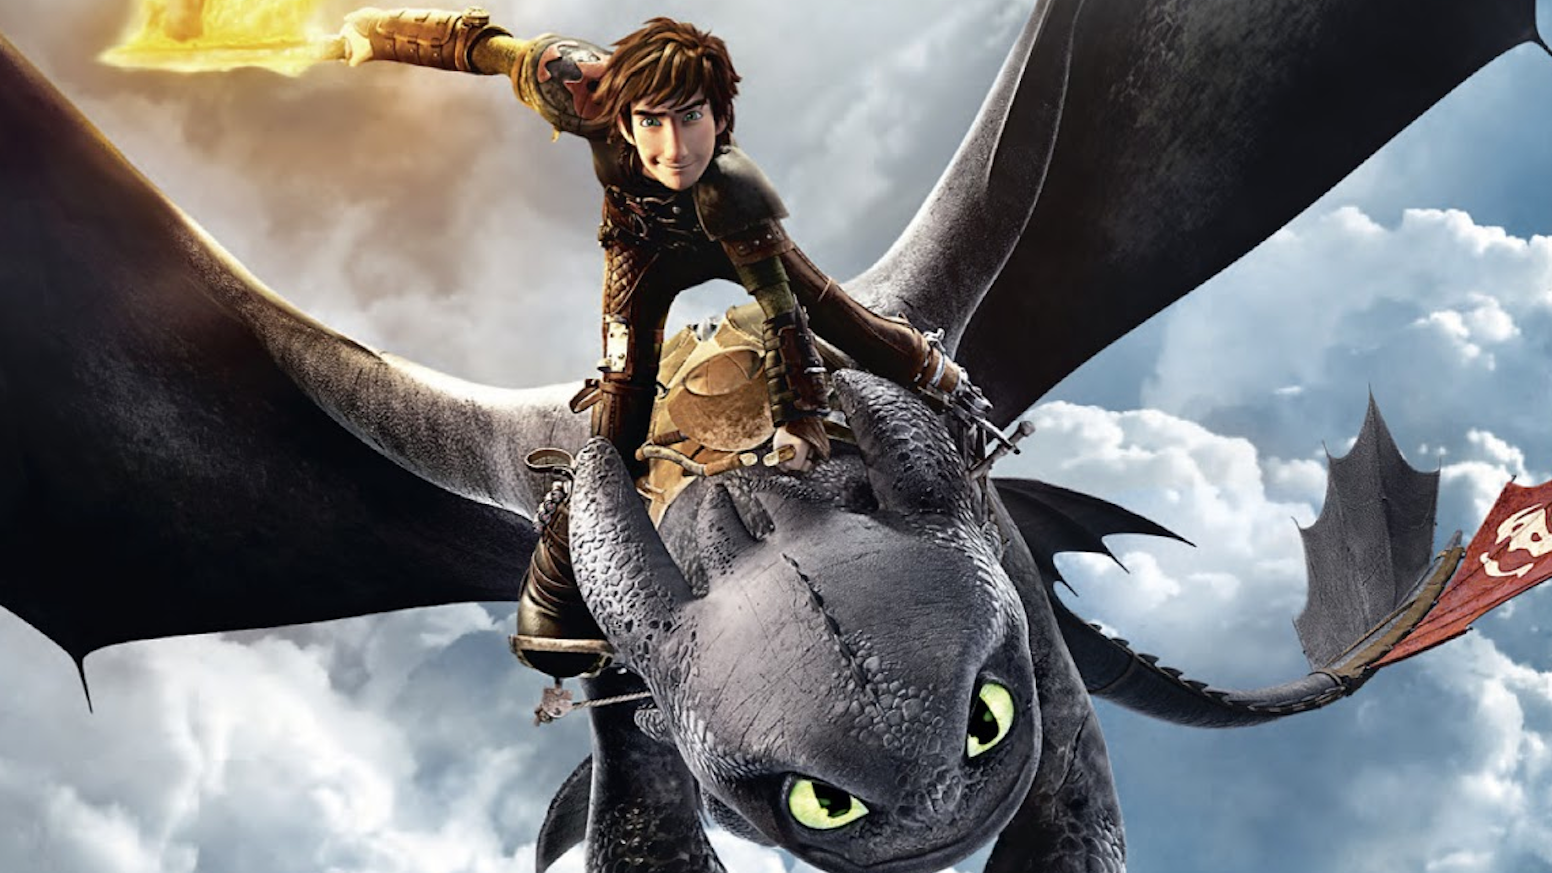 How To Train Your Dragon 2 Project Hiccup By Jii Kickstarter